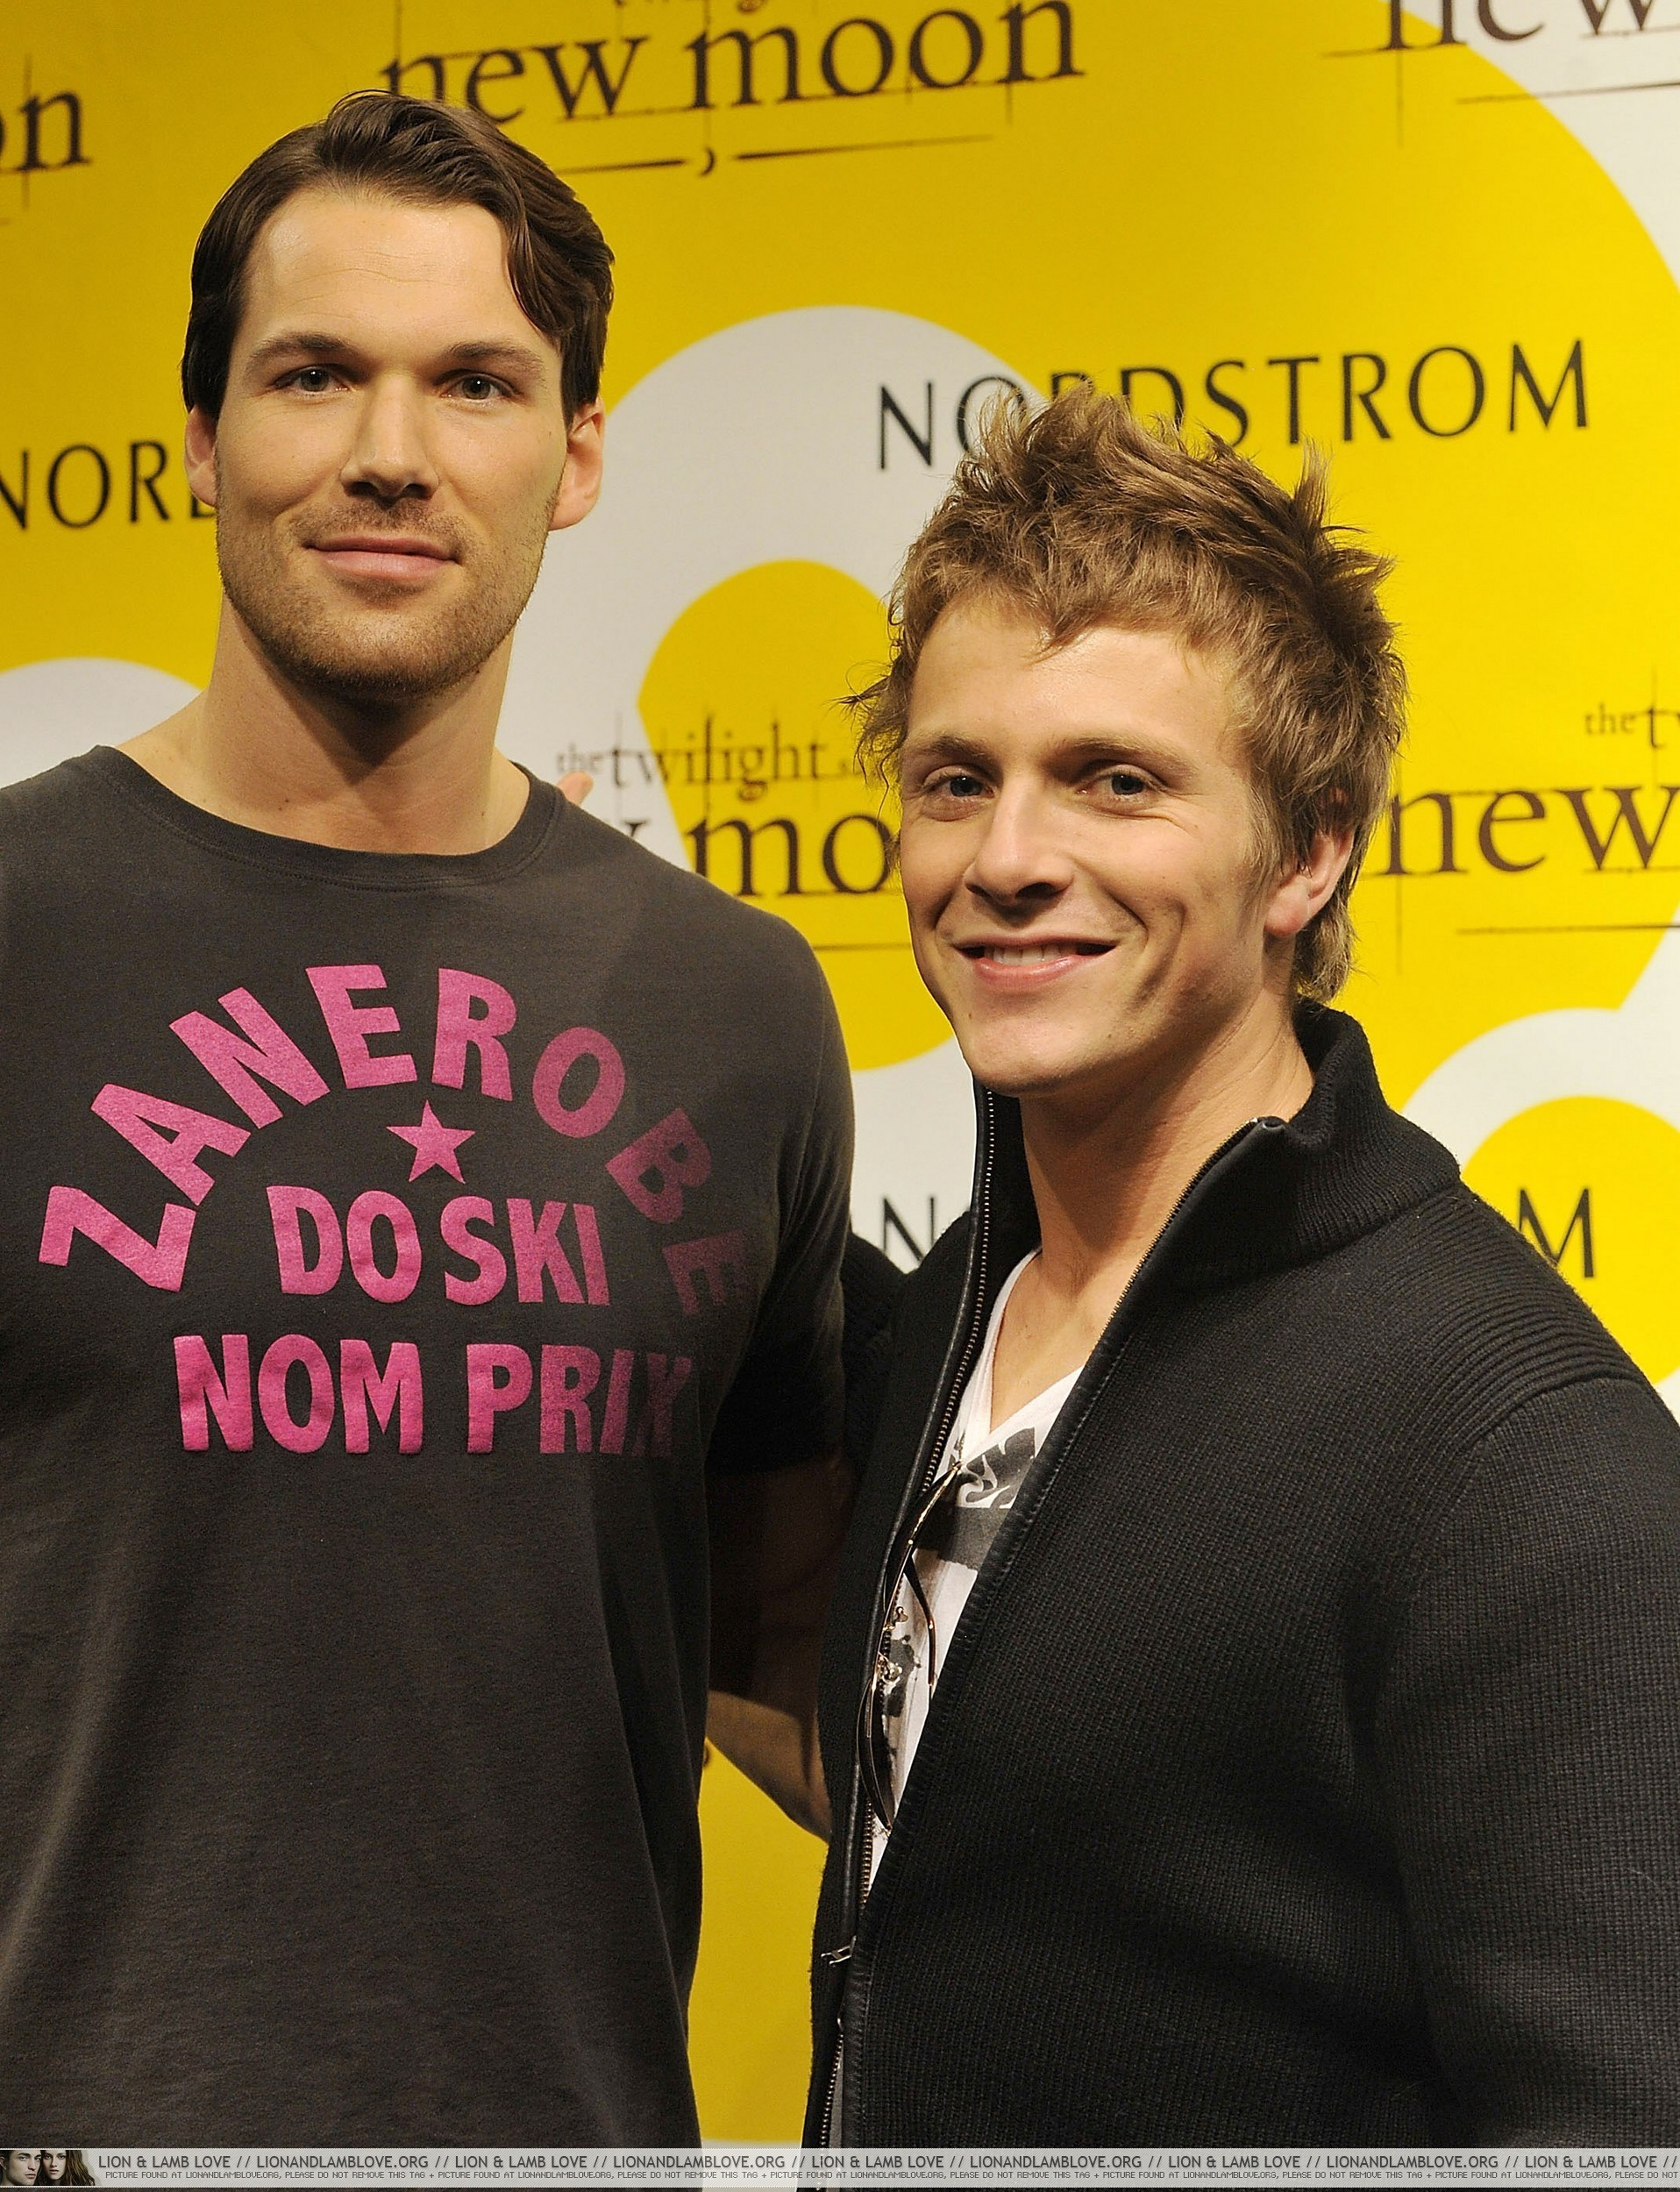 http://images2.fanpop.com/image/photos/9000000/Daniel-and-Charlie-in-New-Jersey-10-November-twilight-series-9012584-1916-2500.jpg